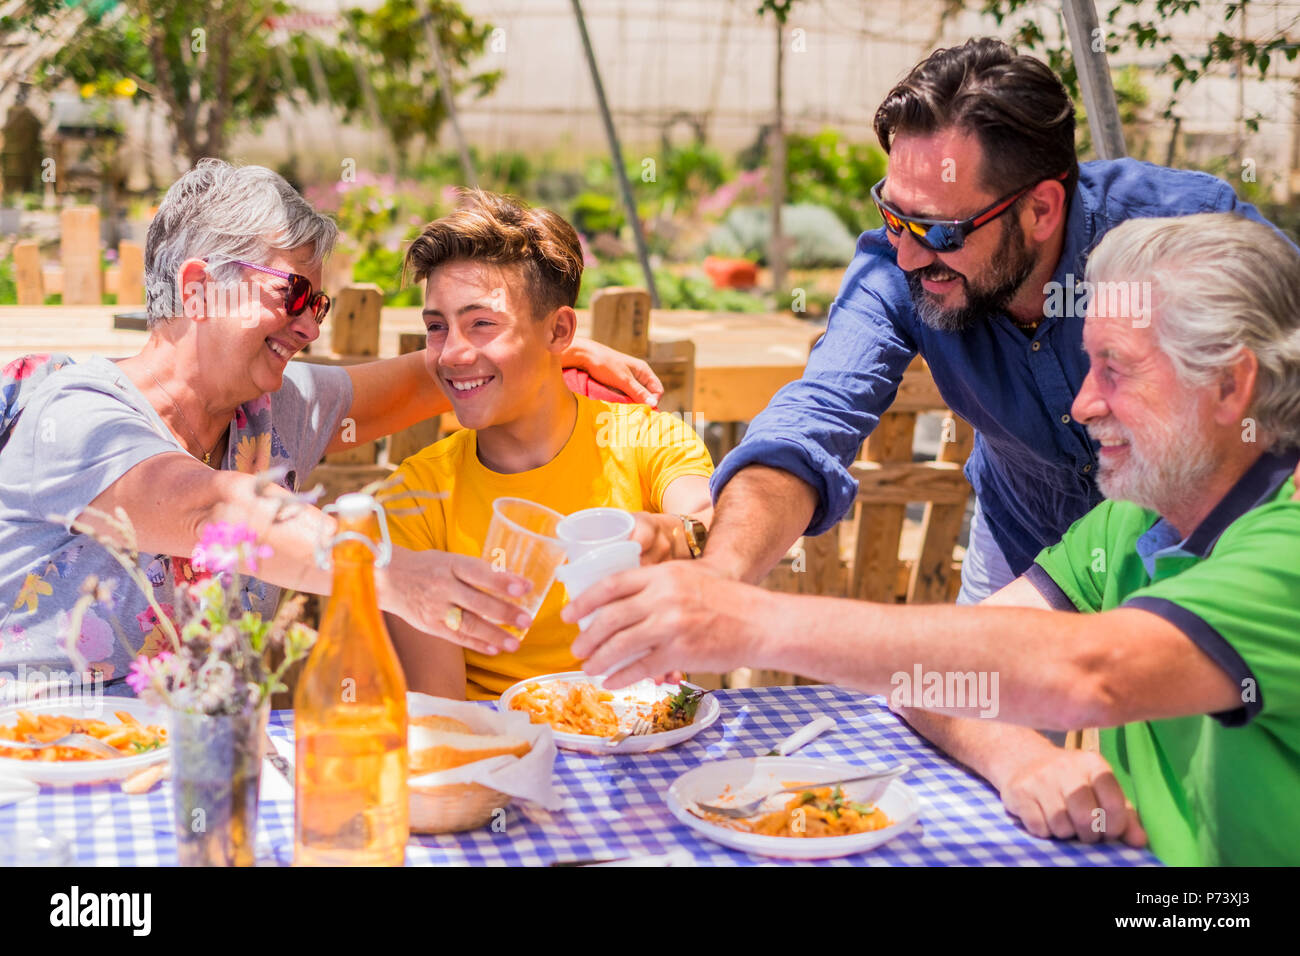 family three differente grnarations grandfathers father son all together celebrating the nice summer weather in outdoor leisure activity in an alterna - Stock Image